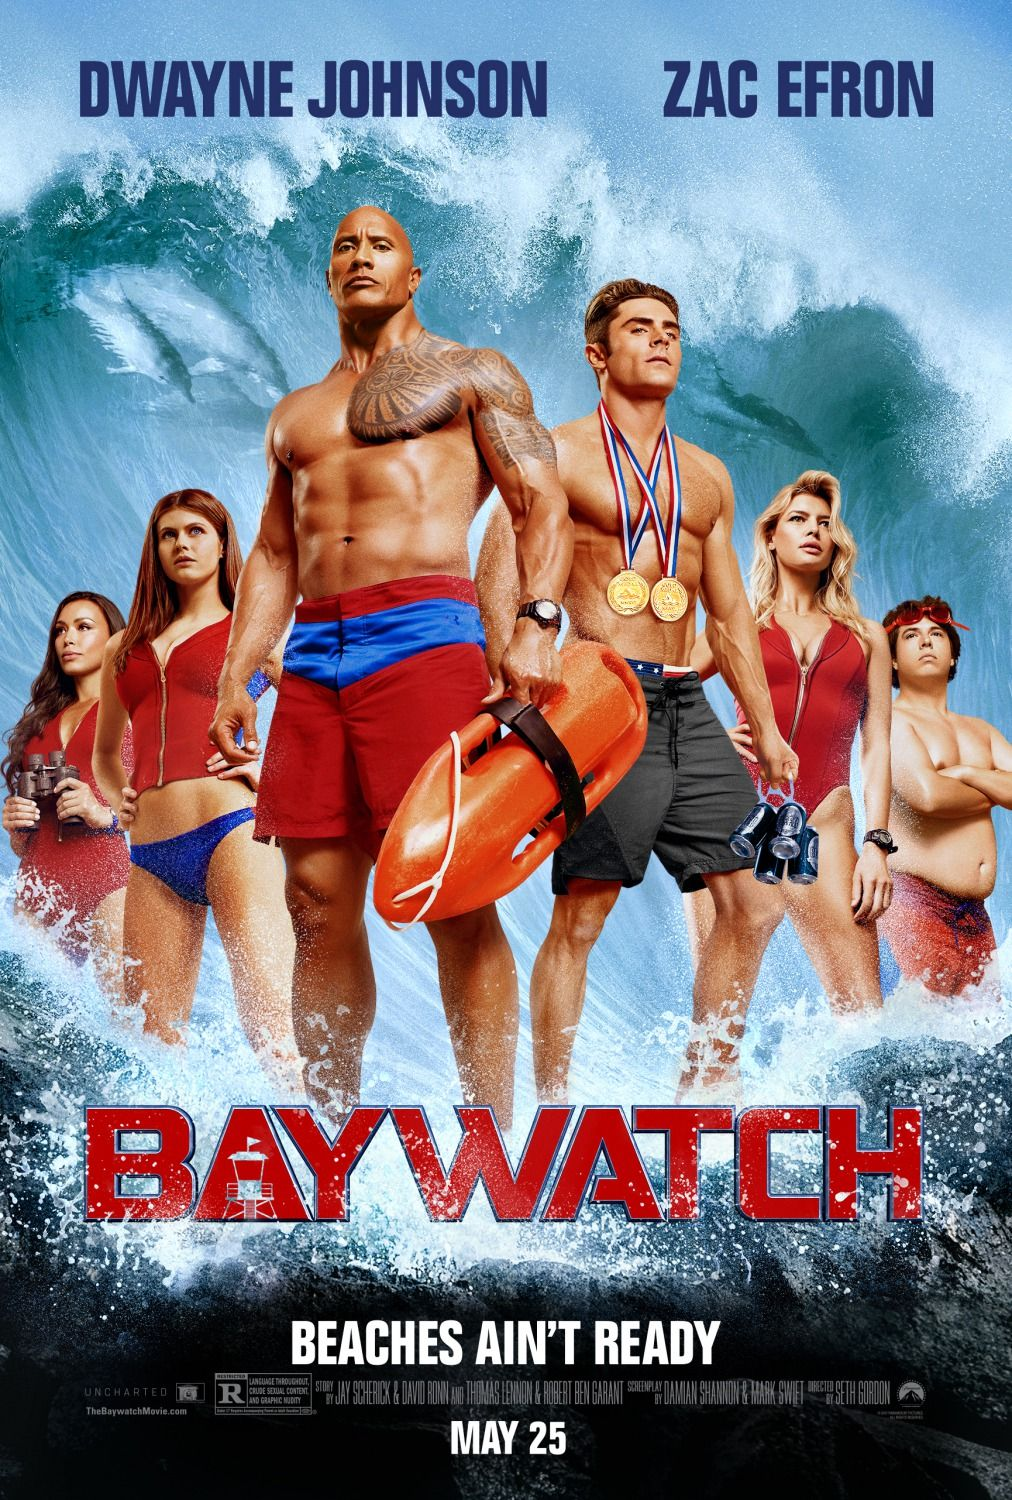 Baywatch 2017 movie poster 3 posters pinterest baywatch 2017 baywatch 2017 movie poster 3 fandeluxe Image collections